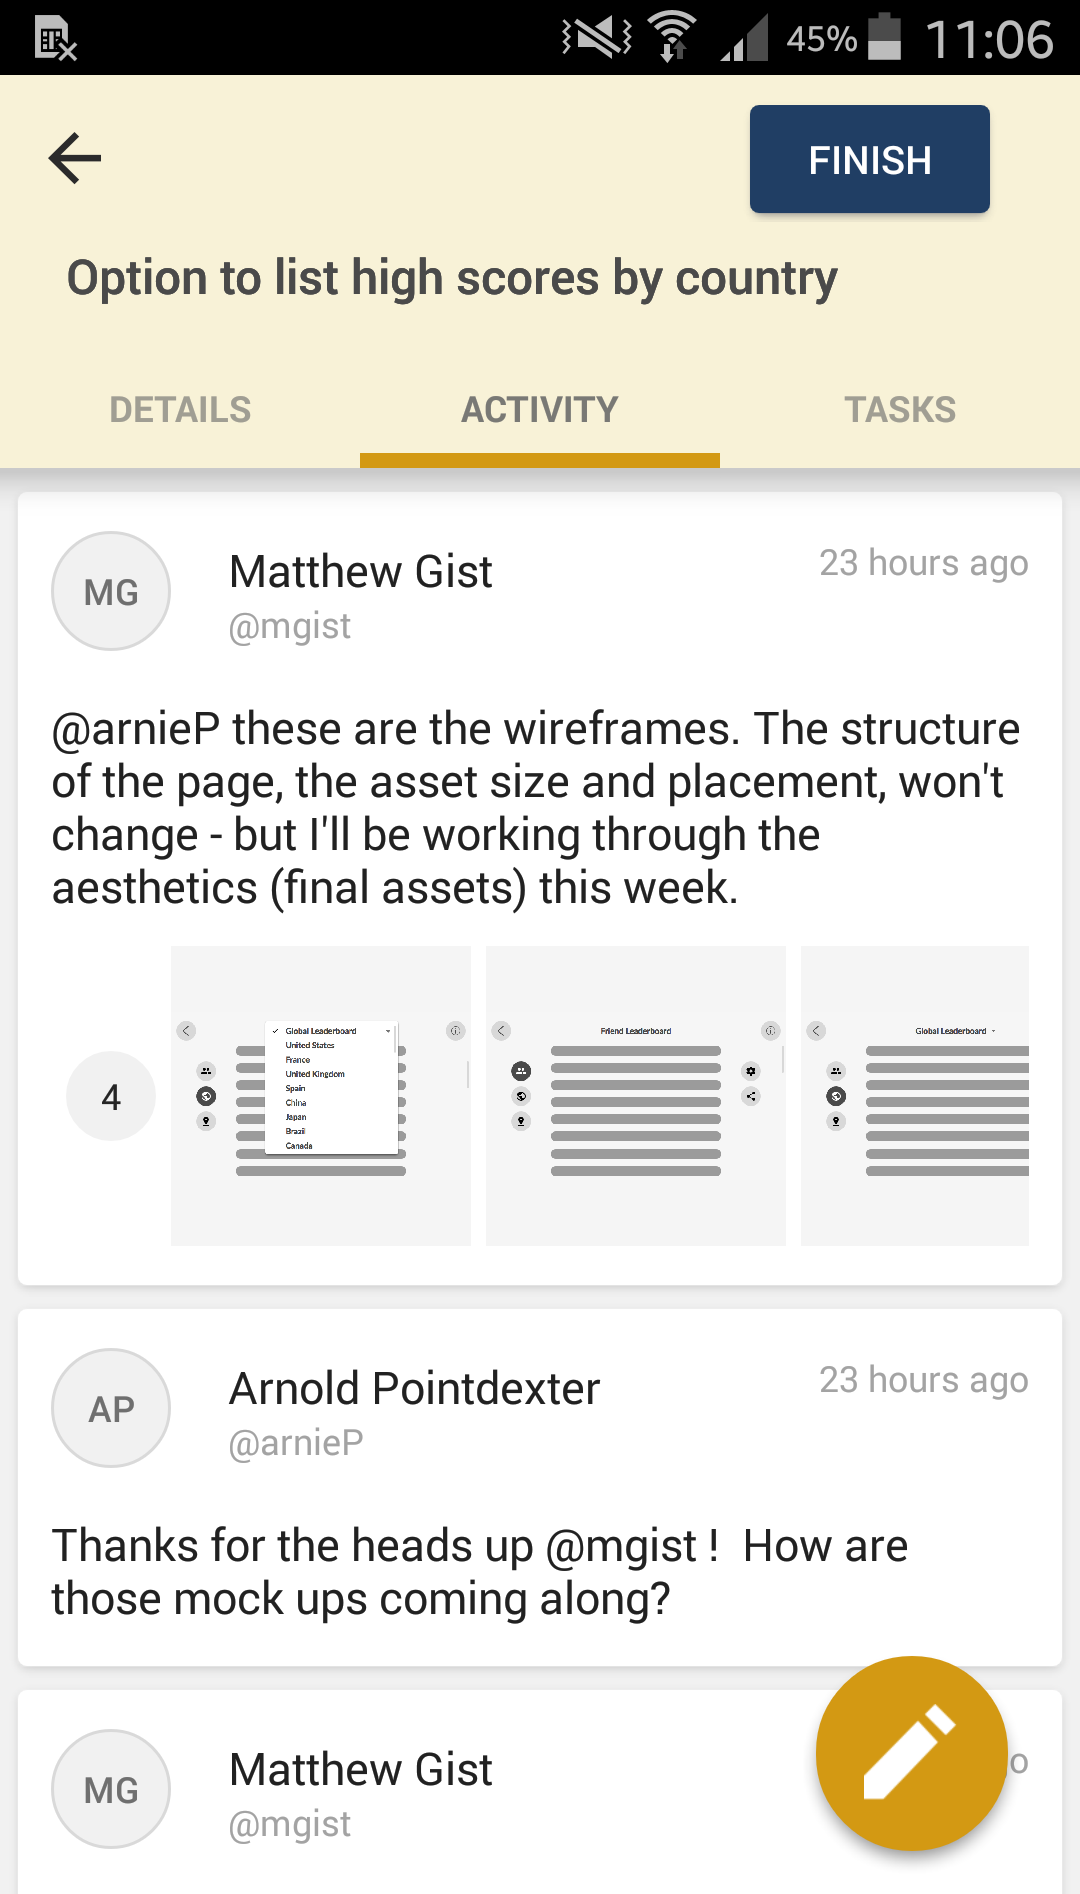 Story activity in the Pivotal Tracker Android app